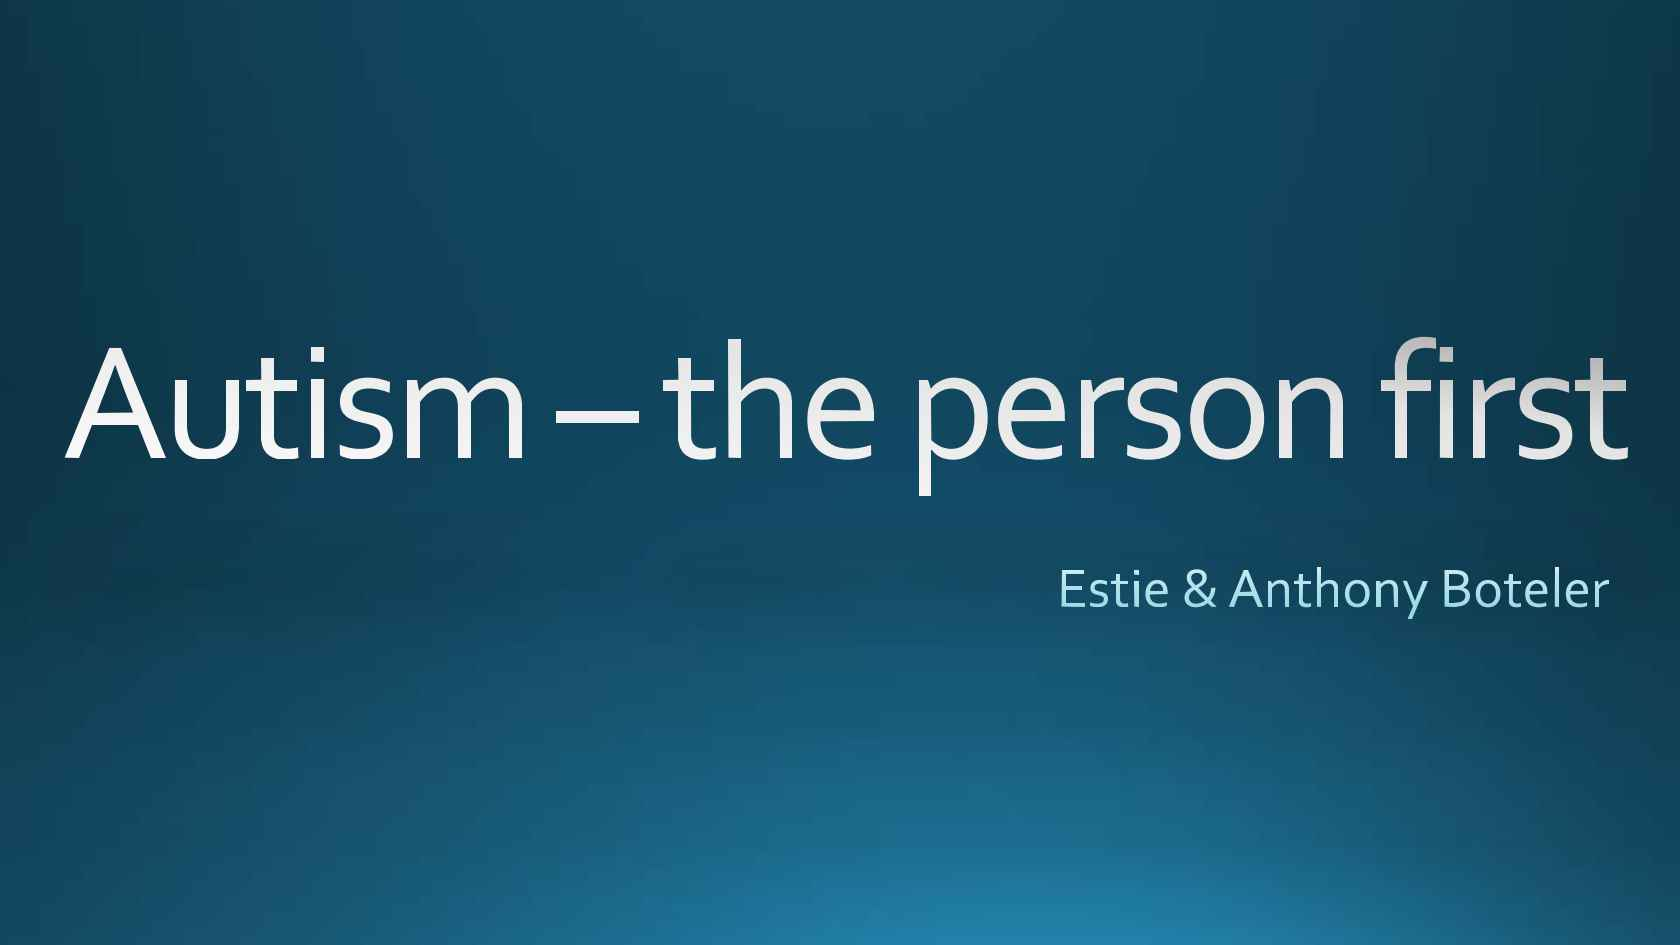 Including Autism – The Person First